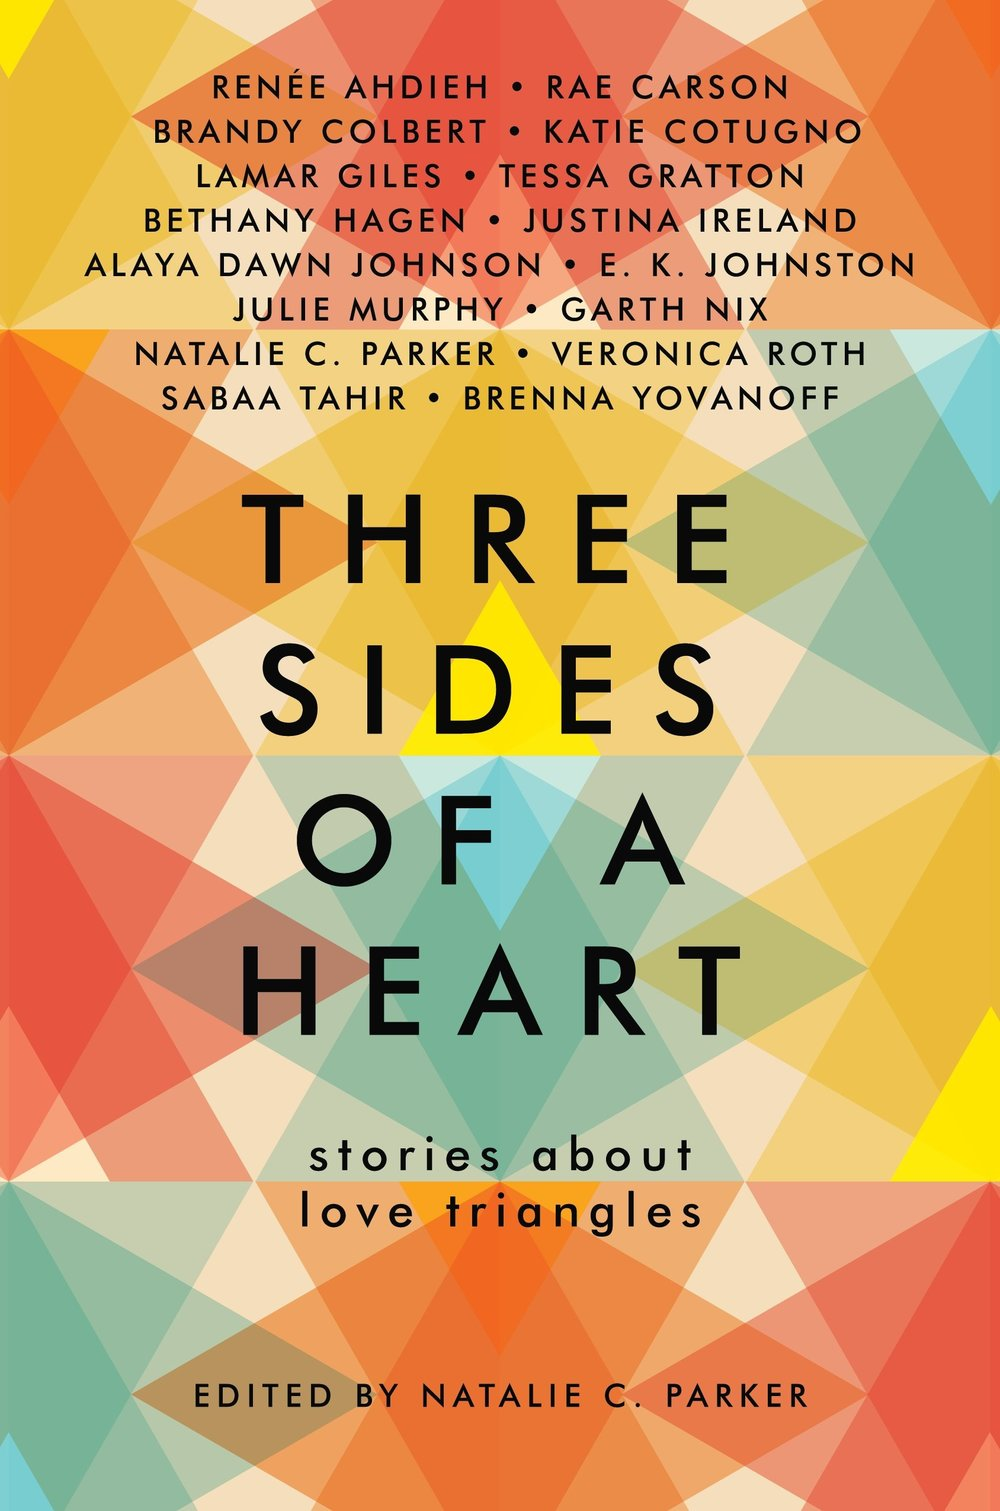 Three Sides of a Heart - You may think you know the love triangle, but you've never seen love triangles like these.These top YA authors tackle the much-debated trope of the love triangle, and the result is sixteen fresh, diverse, and romantic stories you don't want to miss.This collection, edited by Natalie C. Parker, contains stories written by Renee Ahdieh, Rae Carson, Brandy Colbert, Katie Cotugno, Lamar Giles, Tessa Gratton, Bethany Hagan, Justina Ireland, Alaya Dawn Johnson, EK Johnston, Julie Murphy, Garth Nix, Natalie C. Parker, Veronica Roth, Sabaa Tahir, and Brenna Yovanoff.A teen girl who offers kissing lessons. Zombies in the Civil War South. The girl next door, the boy who loves her, and the girl who loves them both. Vampires at a boarding school. Three teens fighting monsters in an abandoned video rental store. Literally the last three people on the planet.What do all these stories have in common?The love triangle.